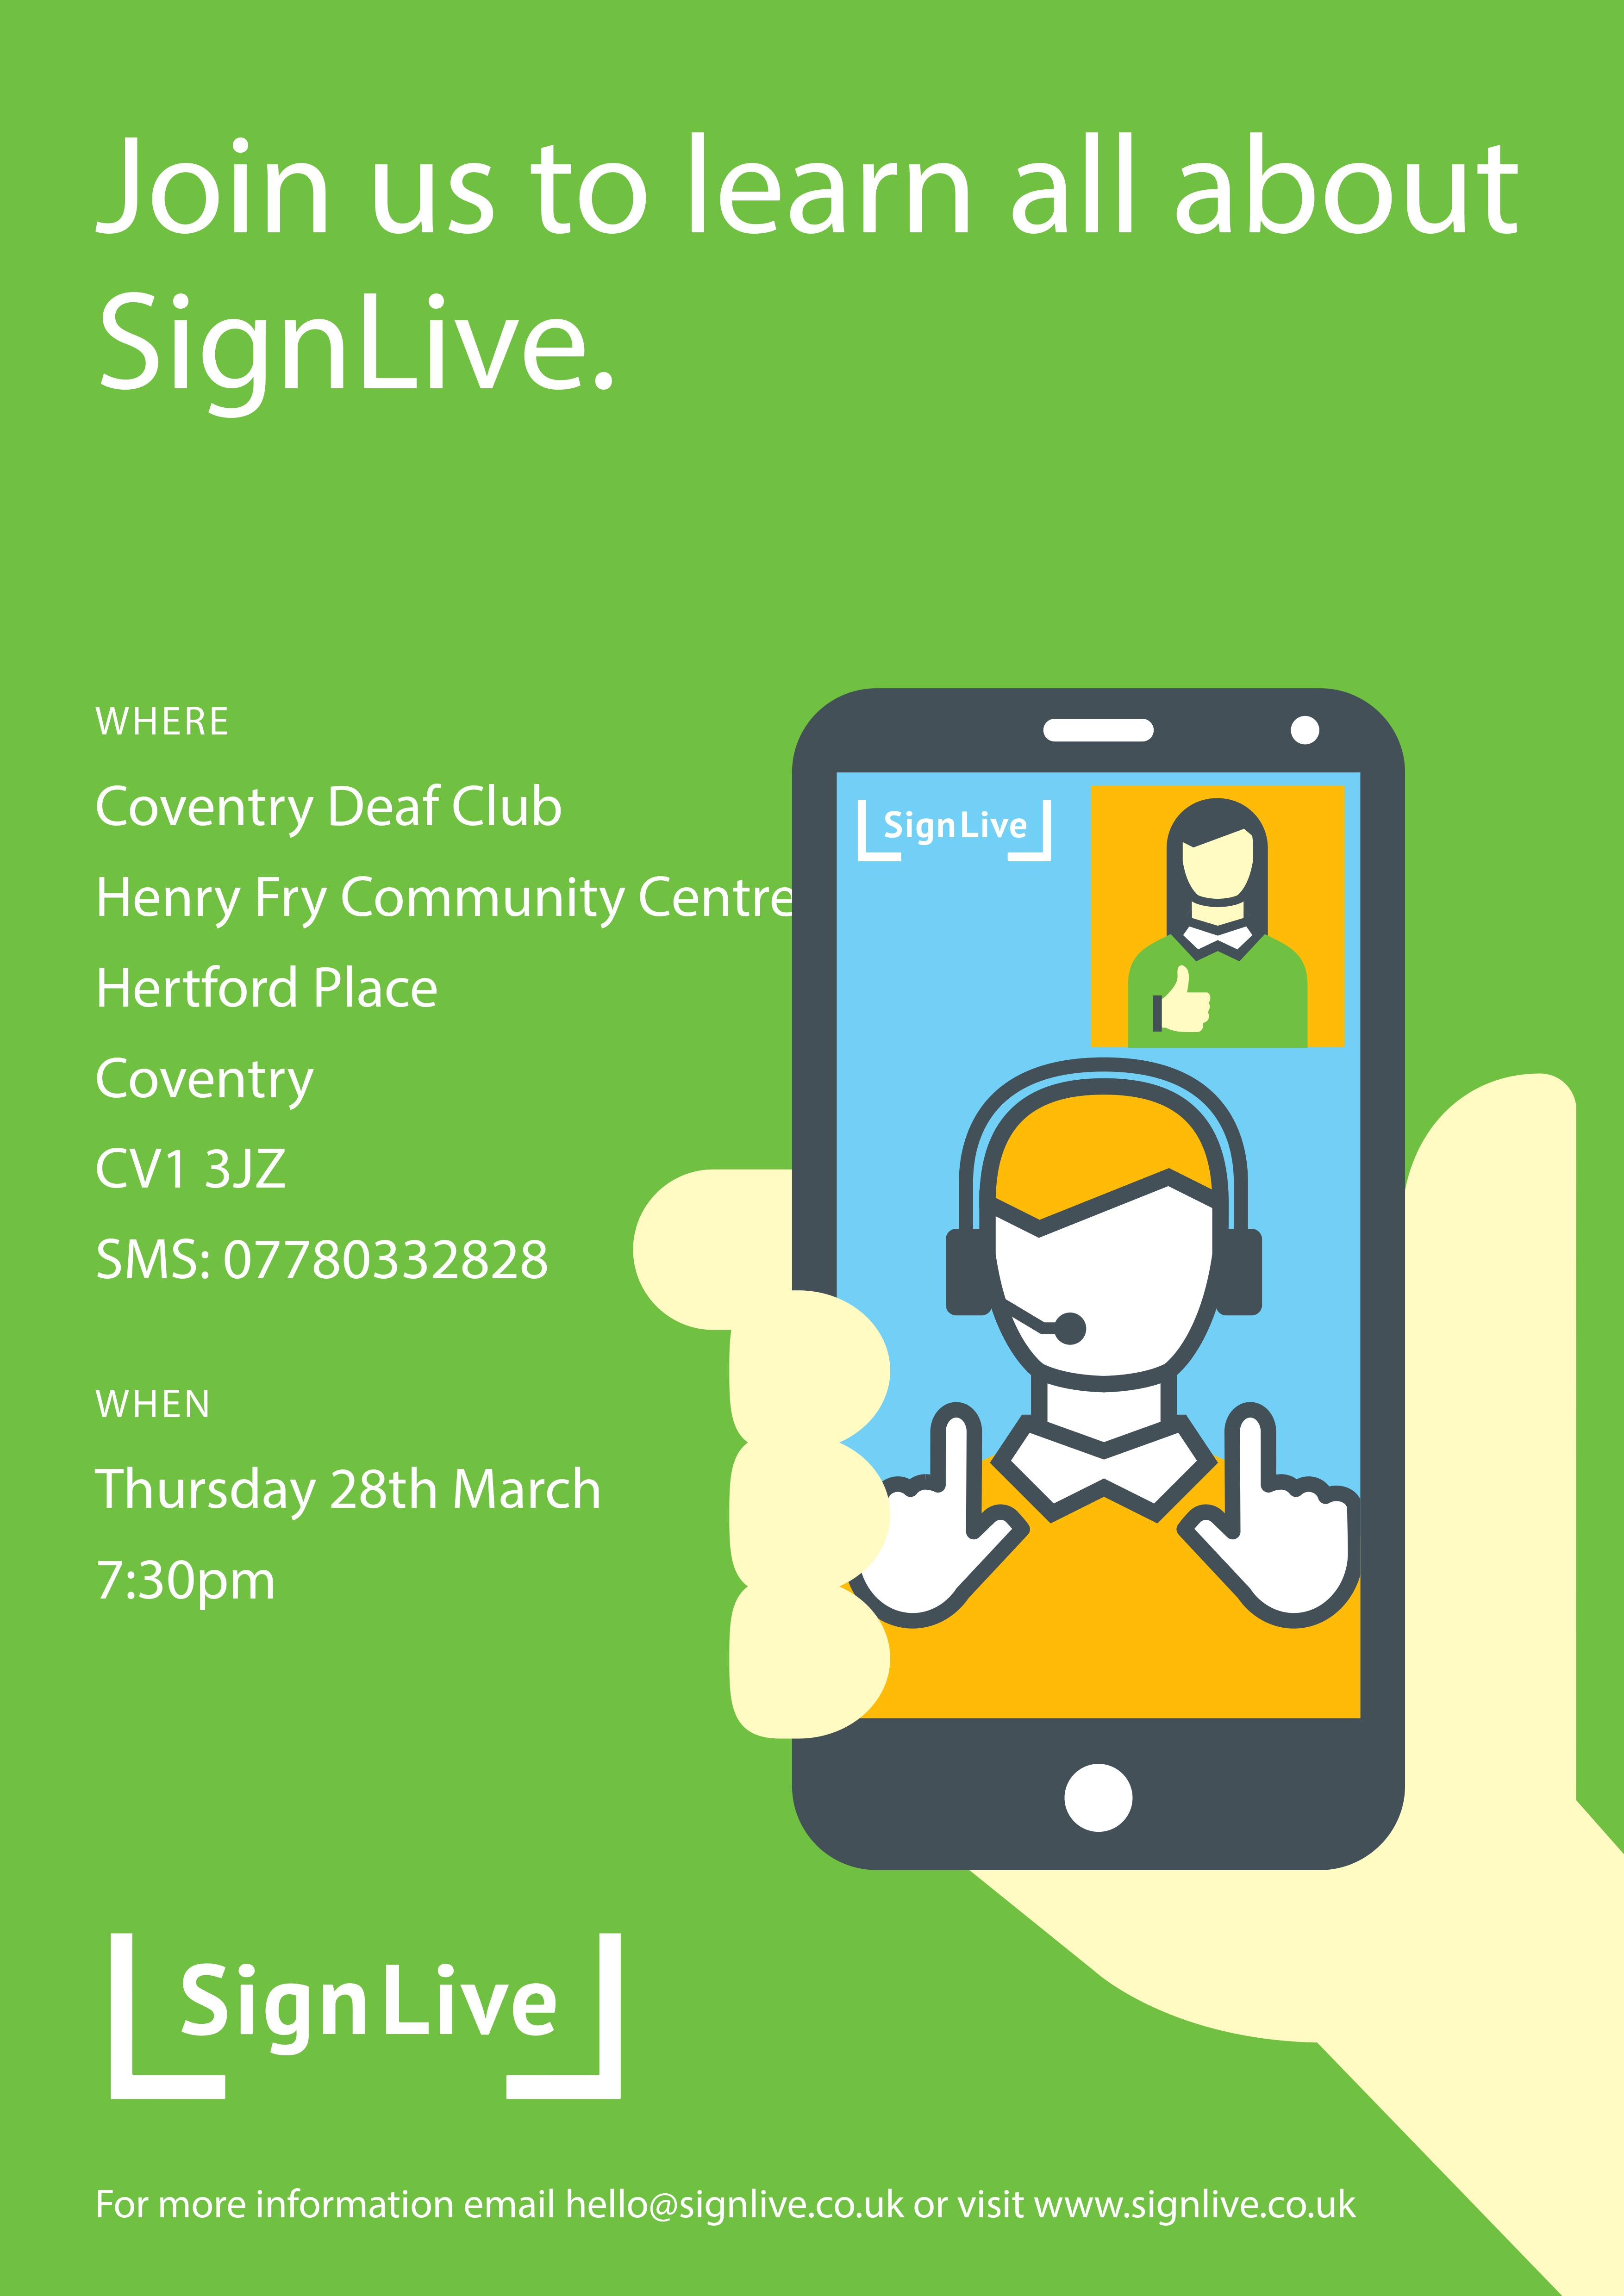 signlive-coventry-deaf-club-2019